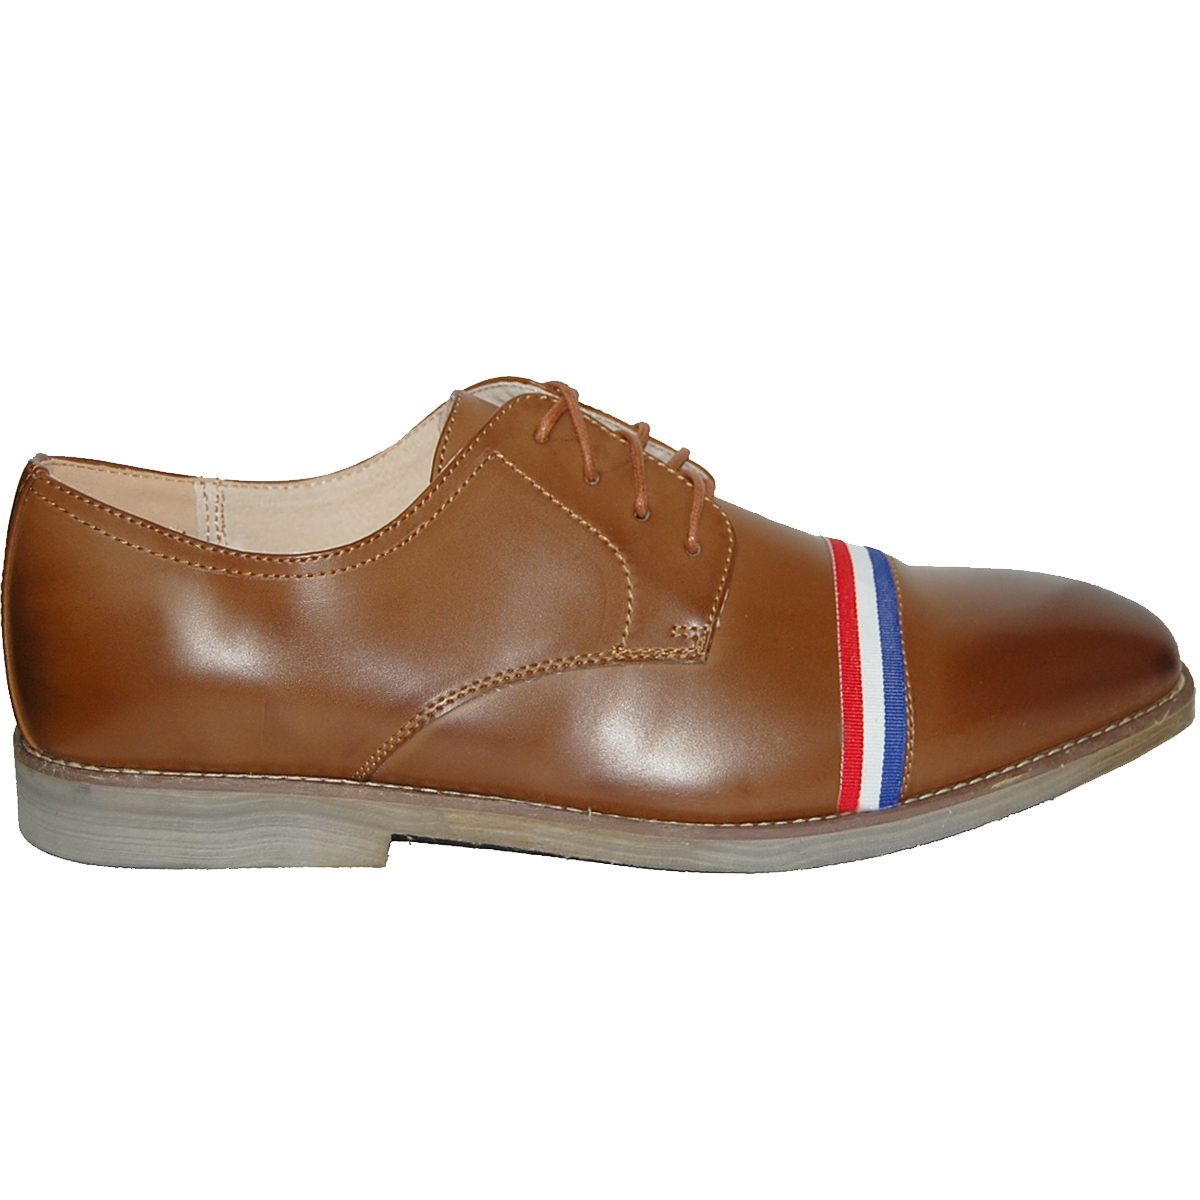 KRAZY SHOE ARTISTS Brown Cap Toe with Red-White-Blue Striped Ornament Men Oxfords